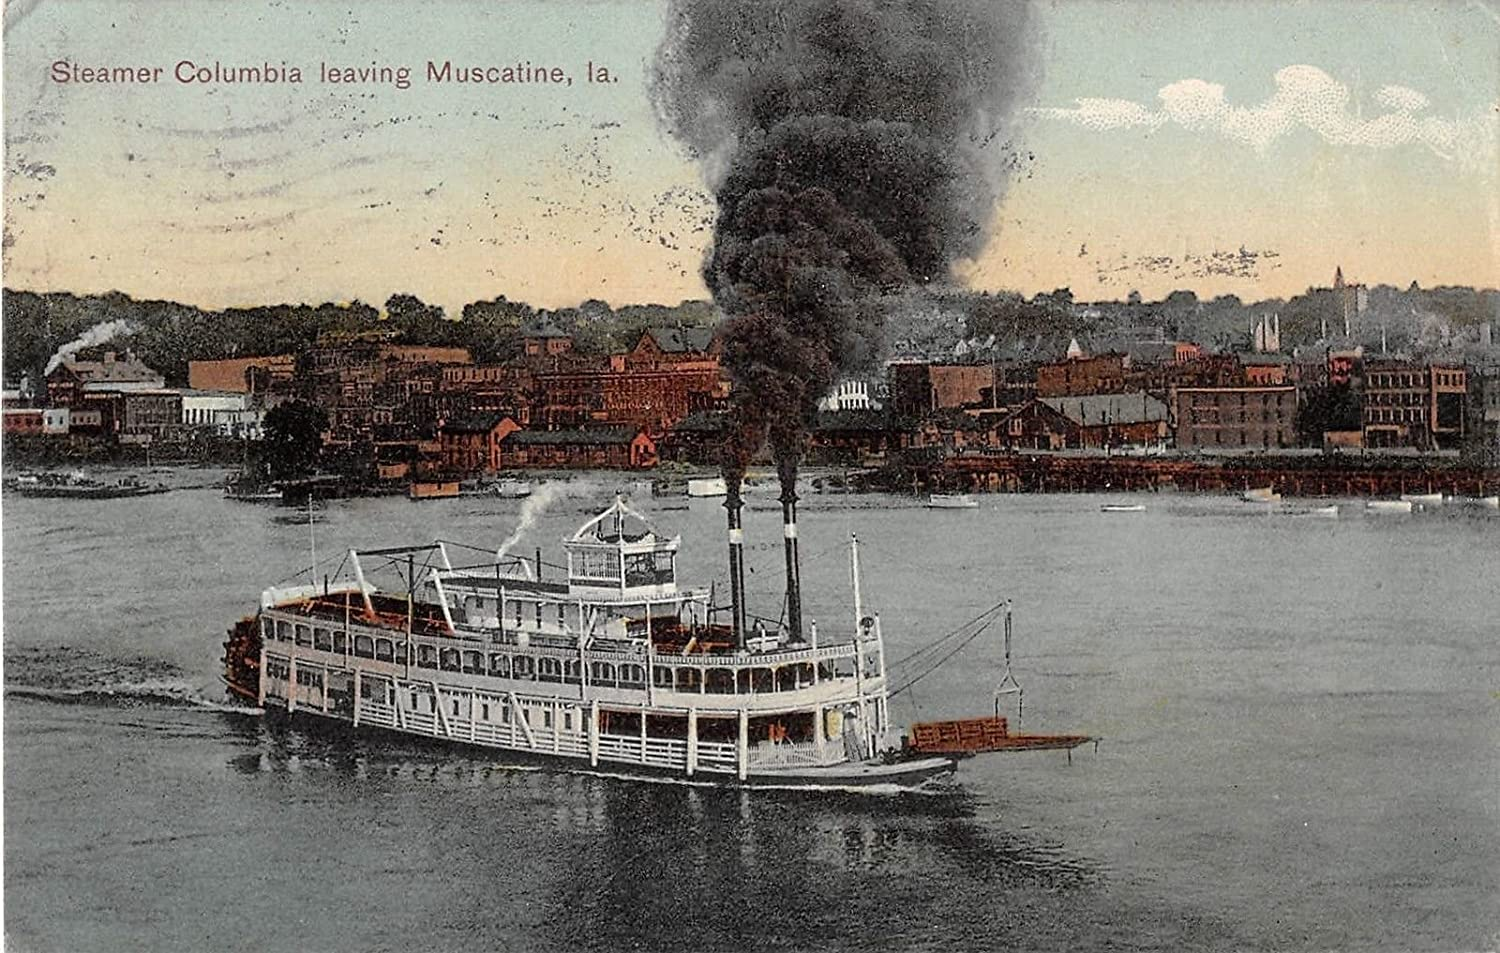 Steamer Columbia leaving Muscatine, Iowa